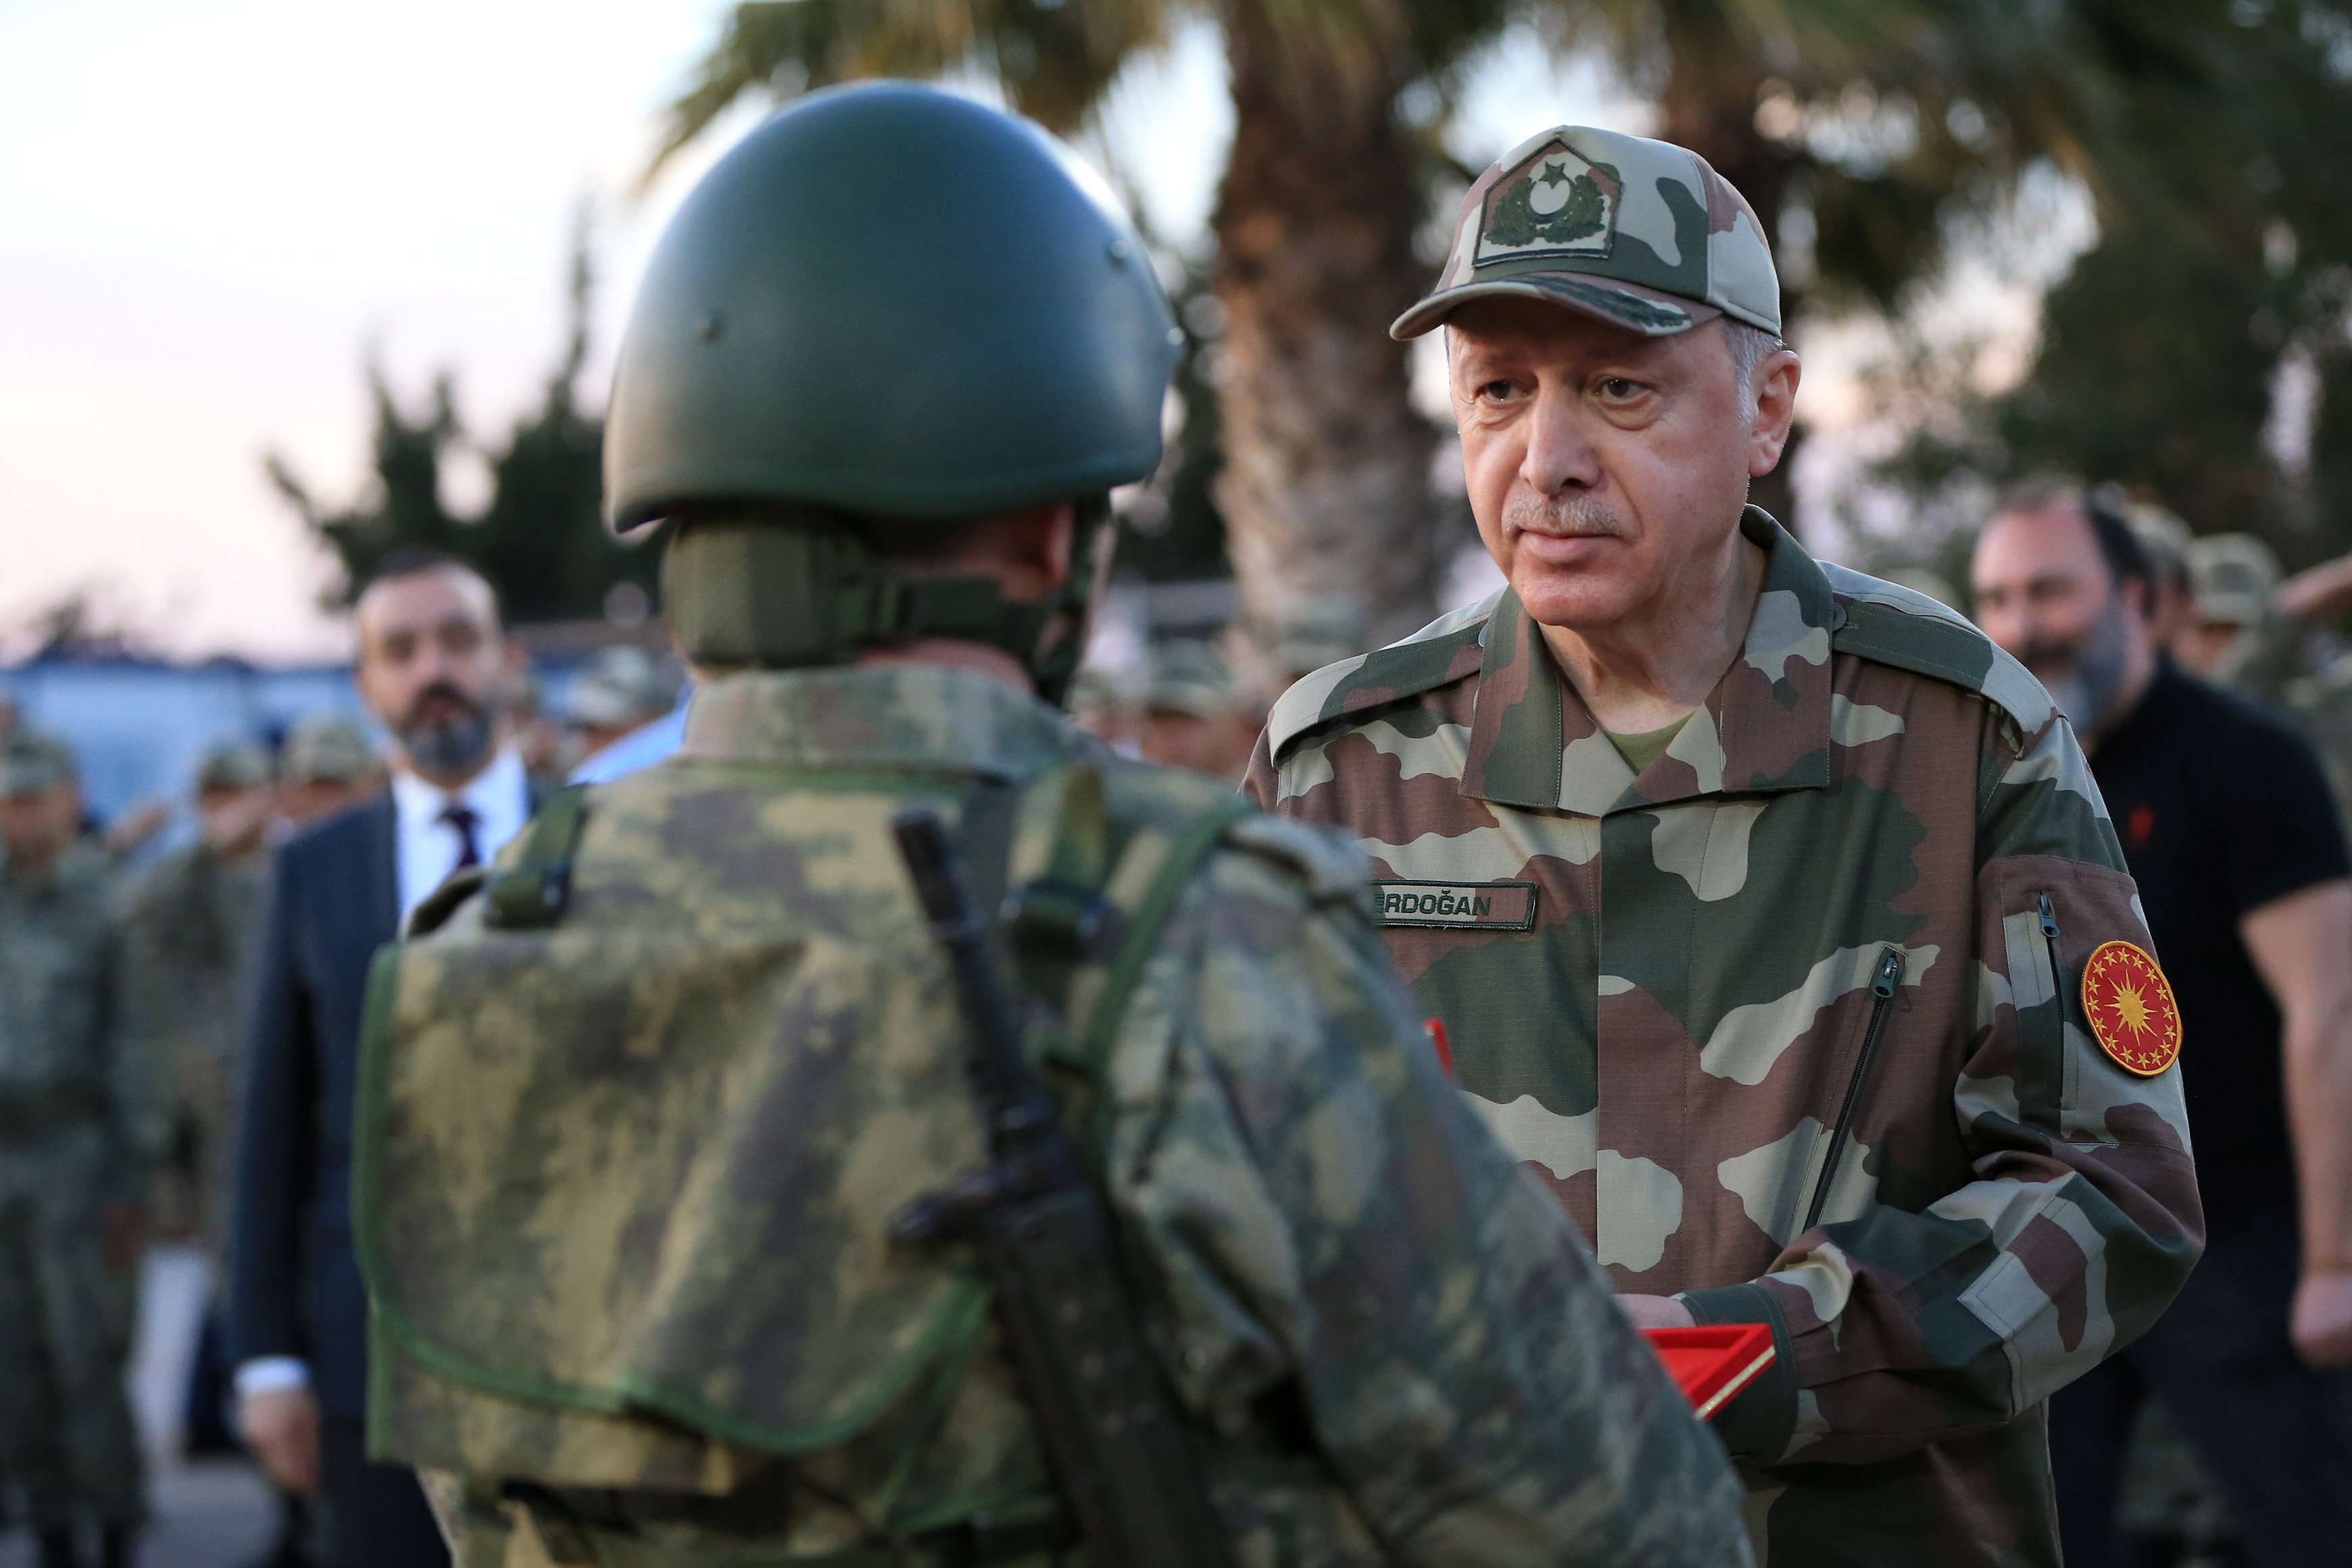 In the spotlight. Turkish President Recep Tayyip Erdogan, wearing a military uniform, arrives at Ogulpinar military post on the Turkish-Syrian border, on April 1. (Reuters)